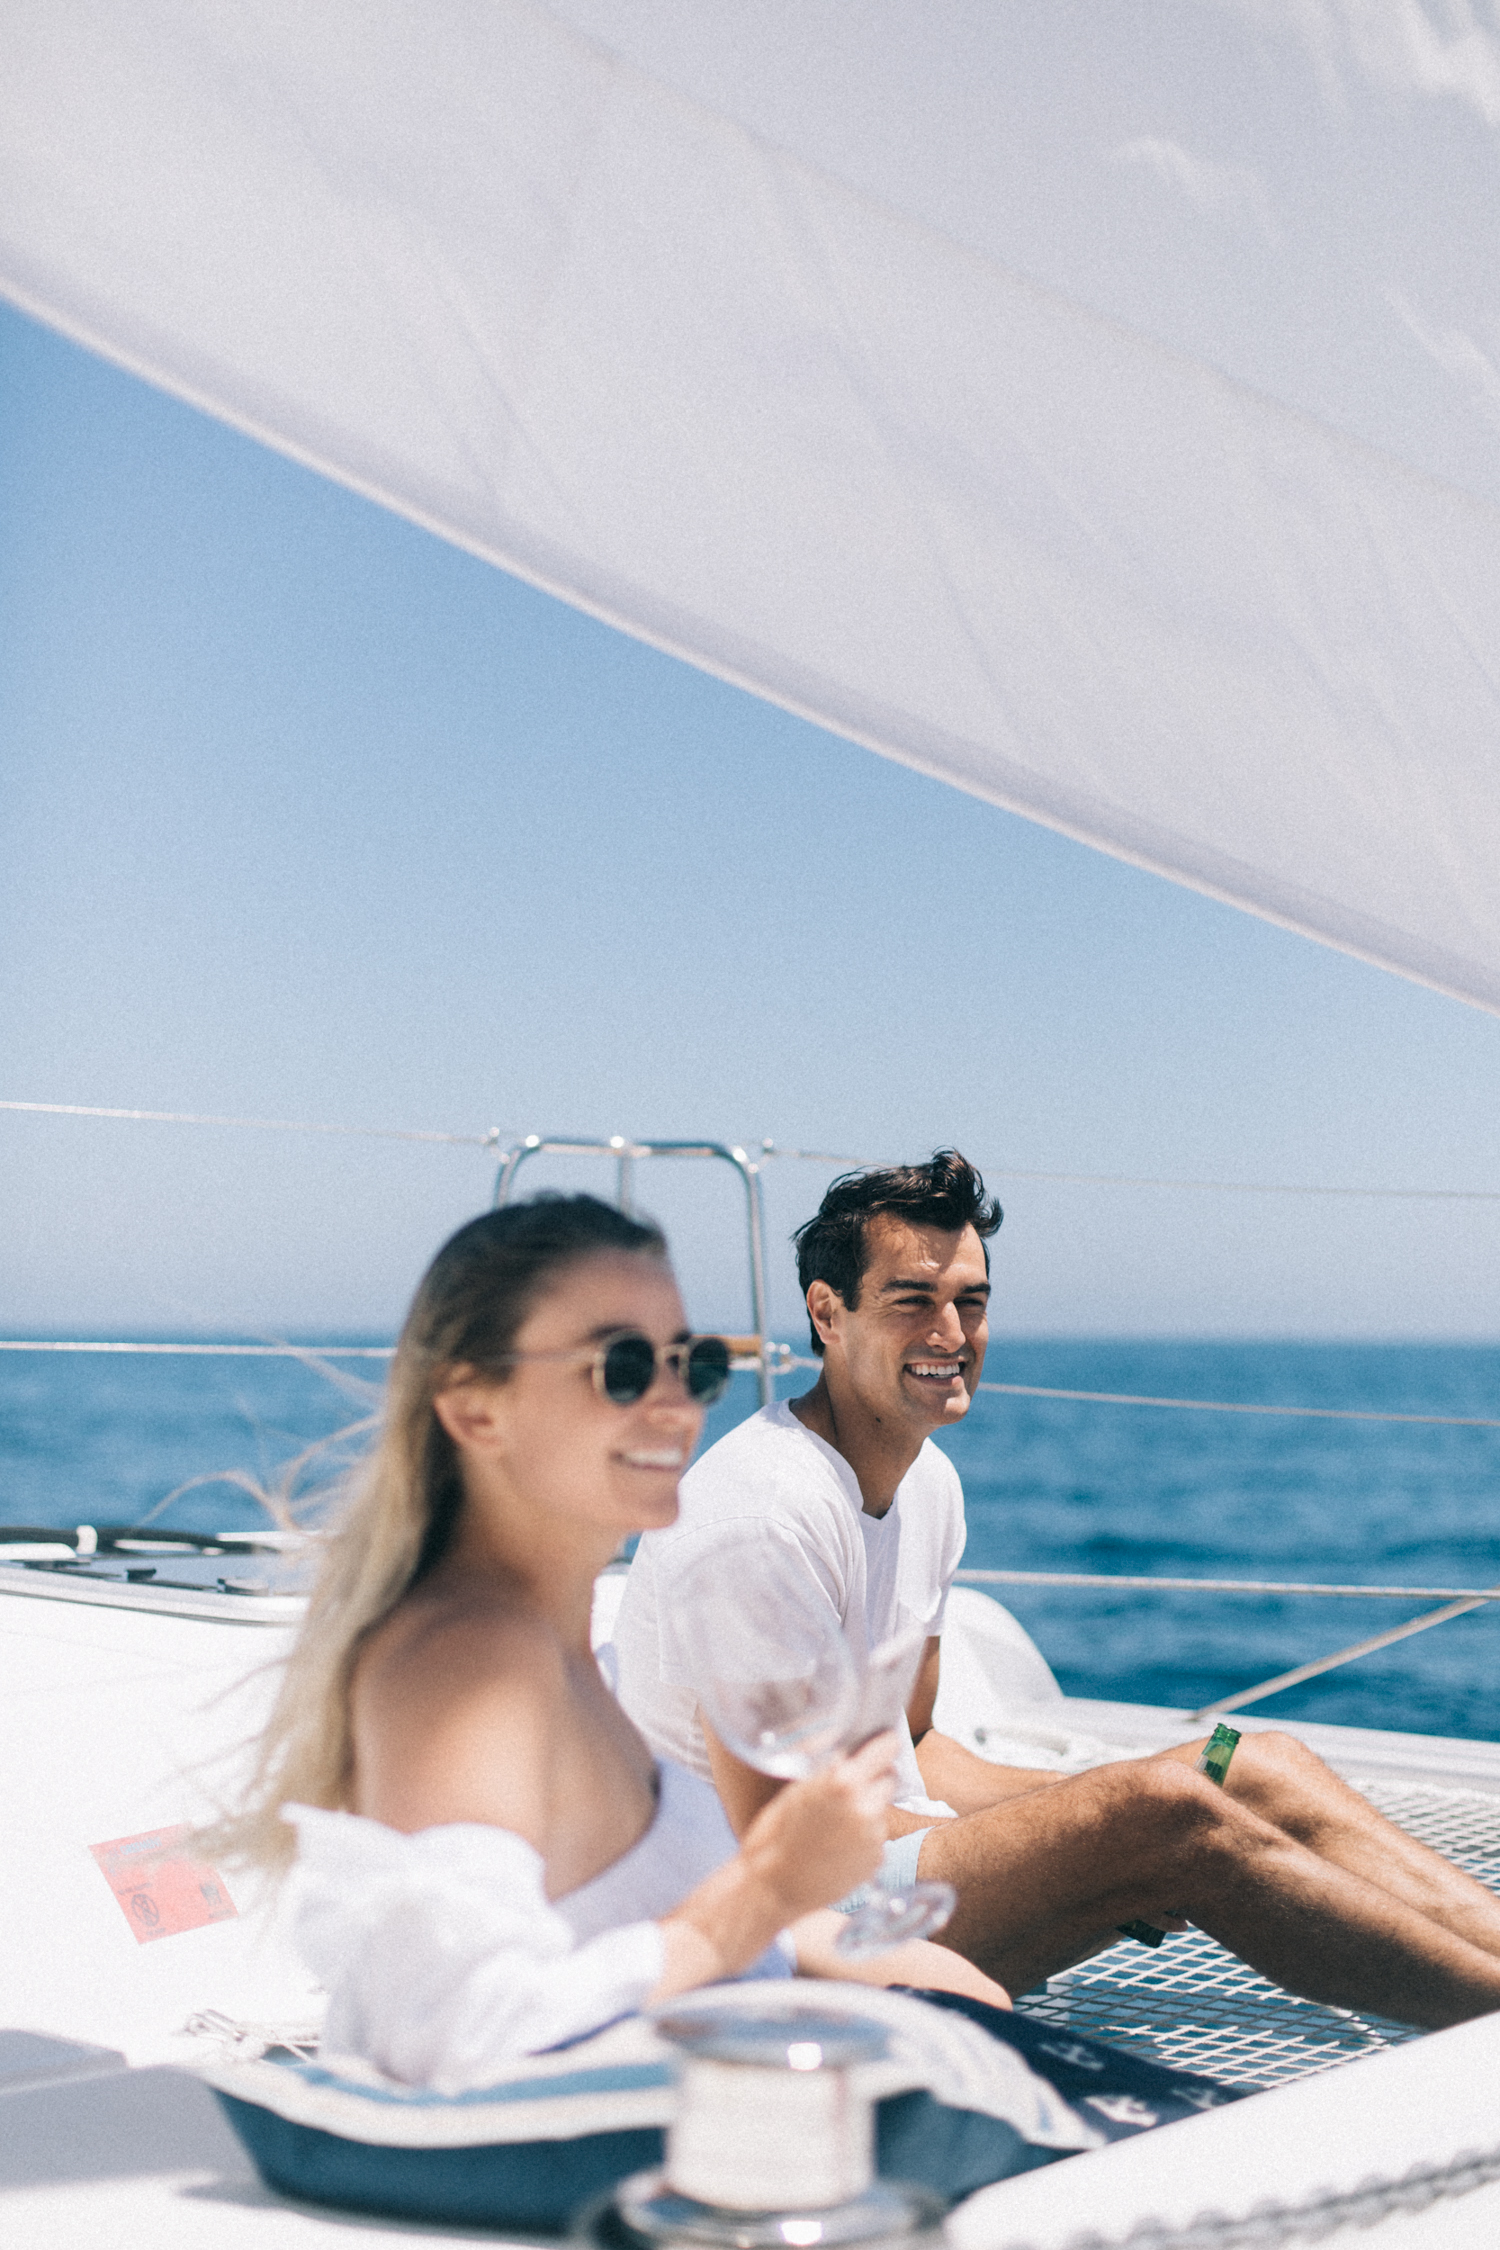 Newport to Laguna Beach sailing trip | A Fabulous Fete